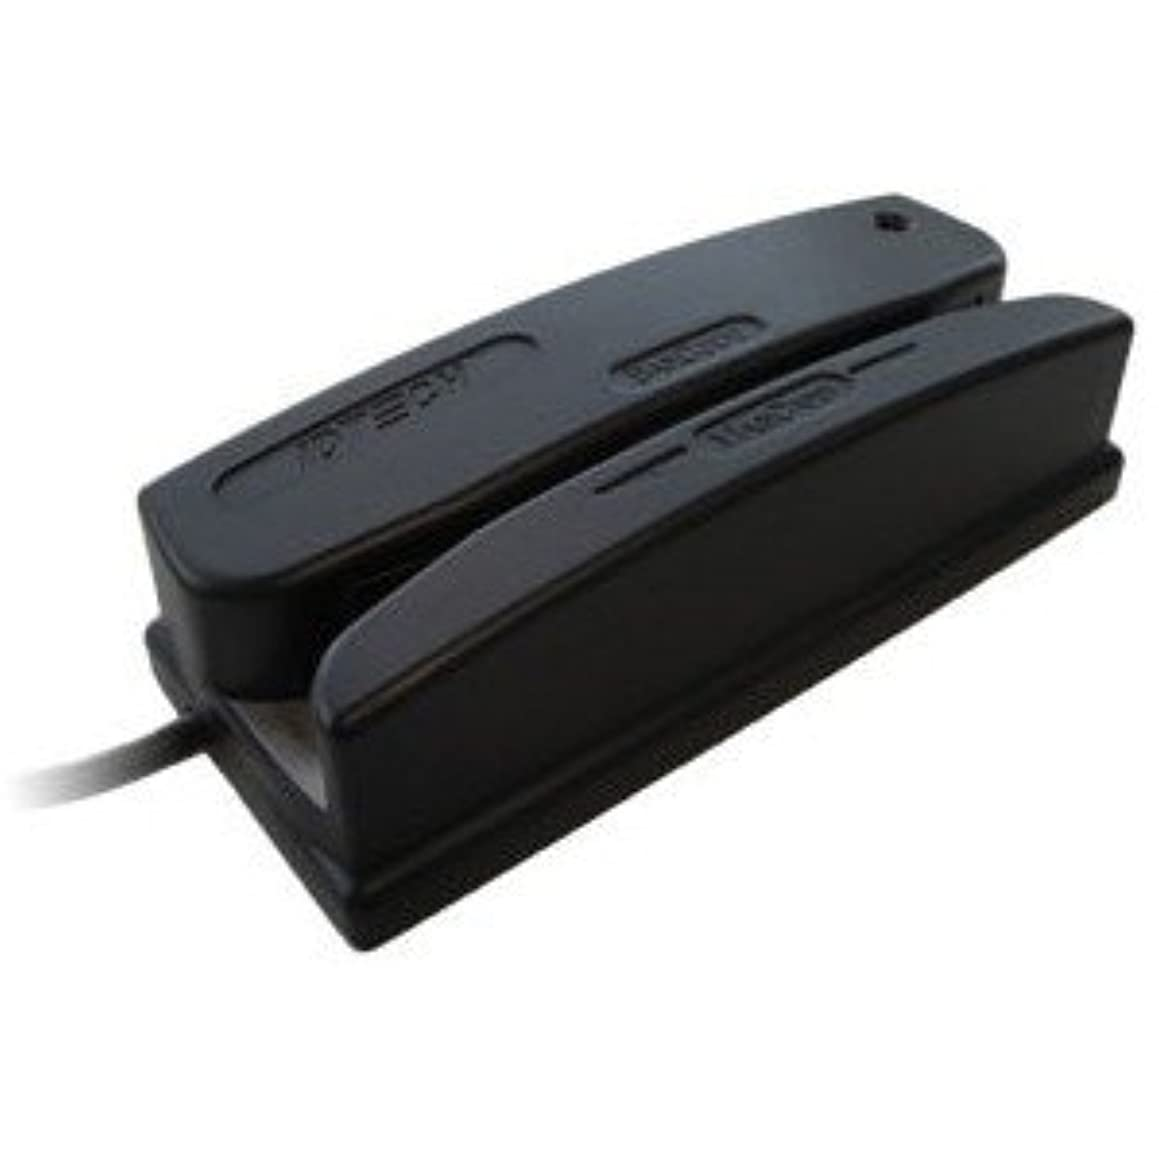 Idtech WCR3237-733U Omni Barcode and MagStripe Reader, Track 1, 2, and 3, USB, Black